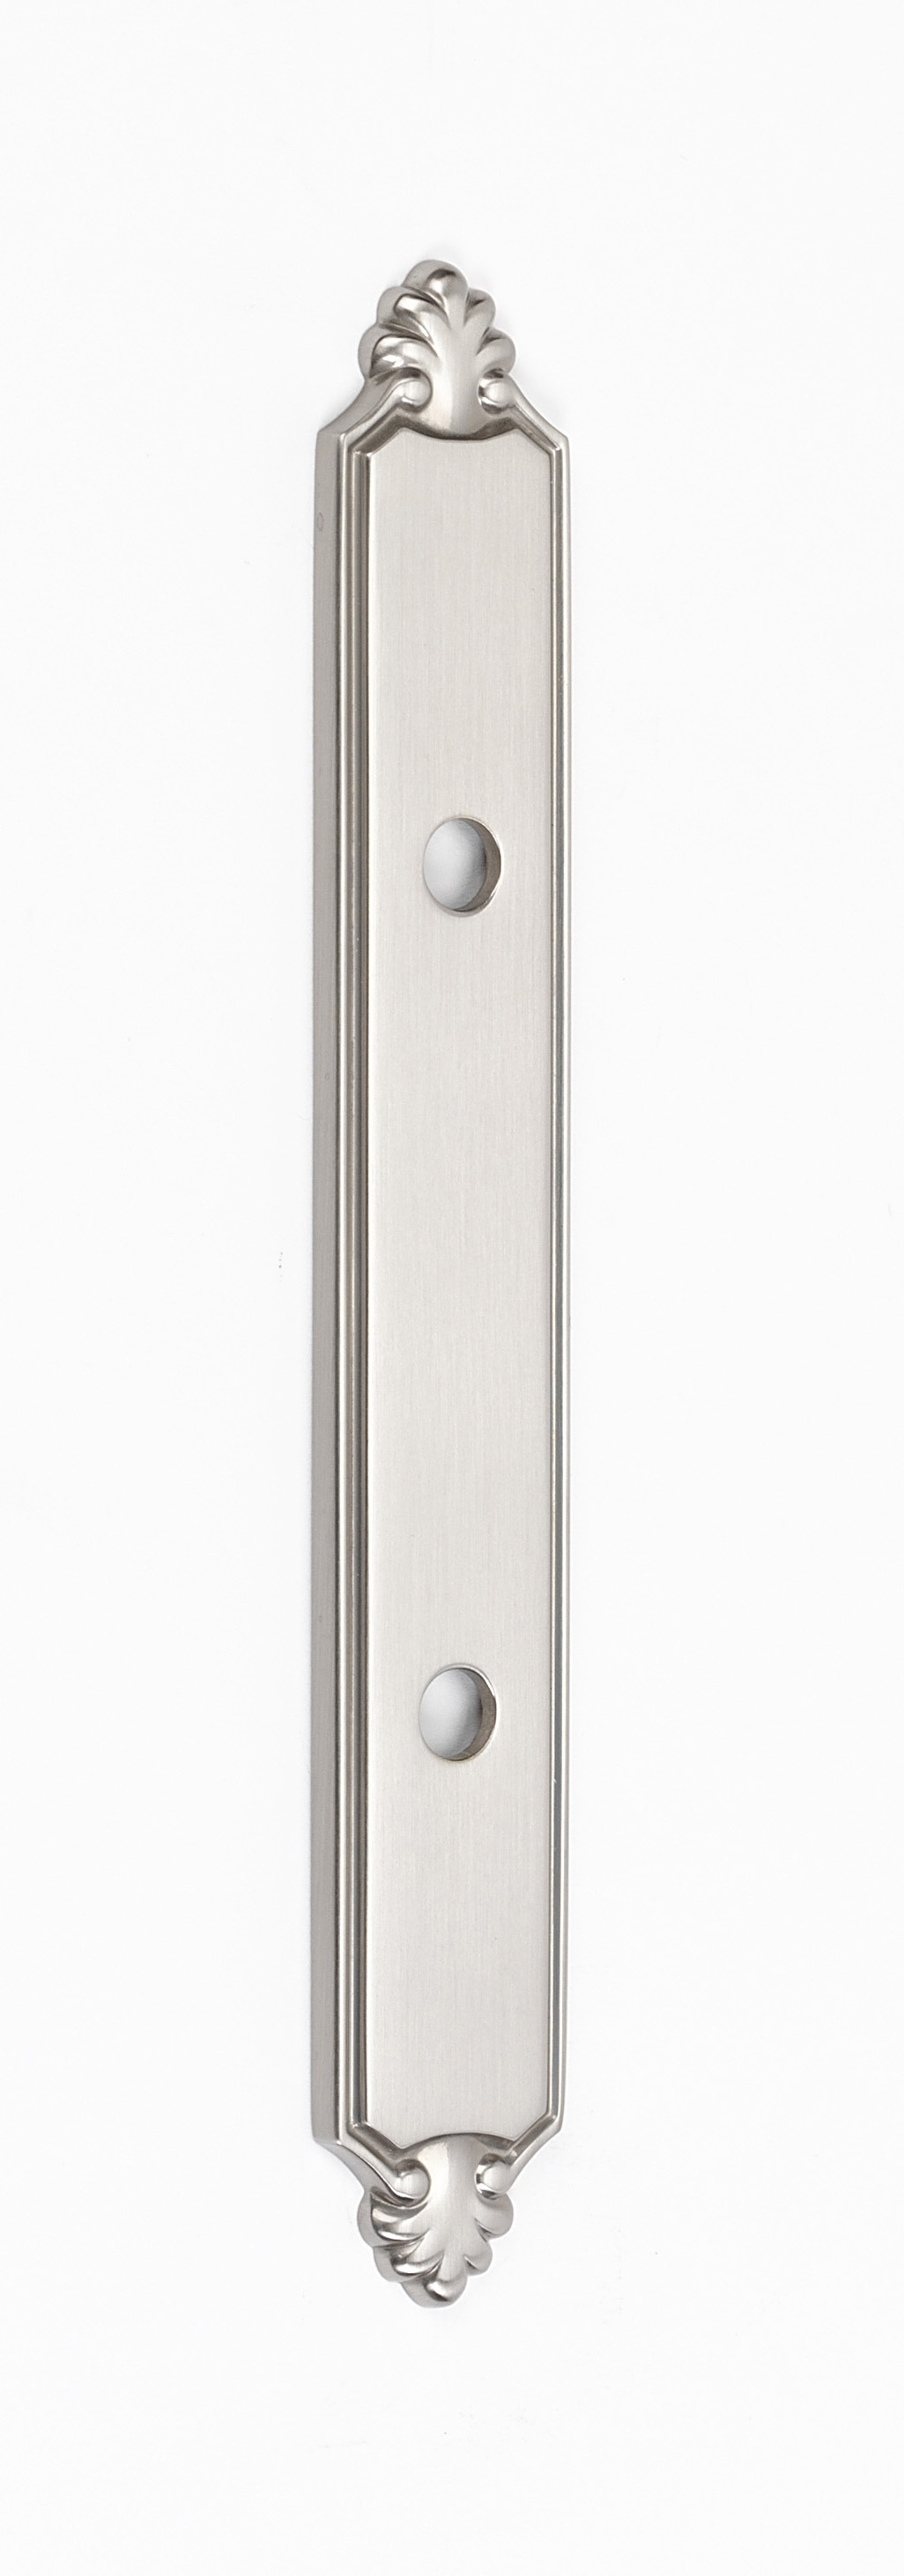 "Alno A1457-3-SN 7 1/4"" Backplate - Satin Nickel"